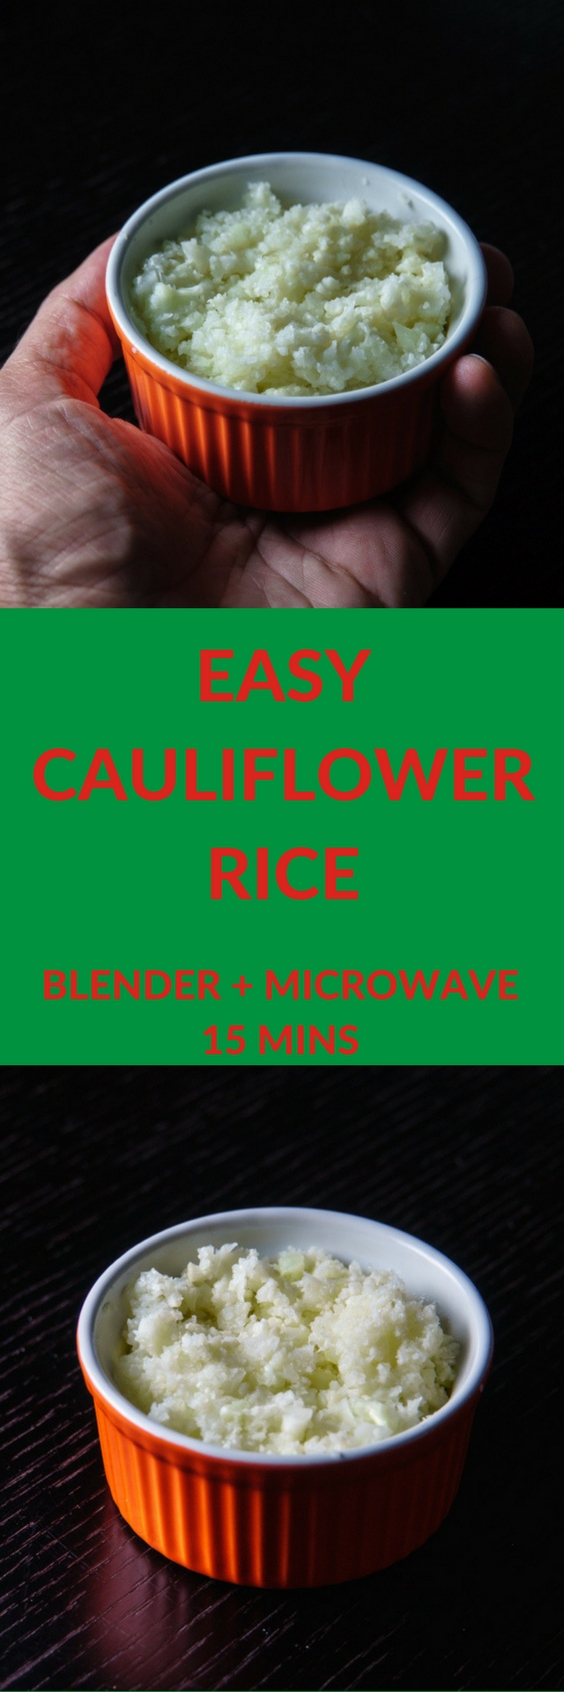 Easy Cauliflower Rice - Blender and Microwave 15 Minute recipe